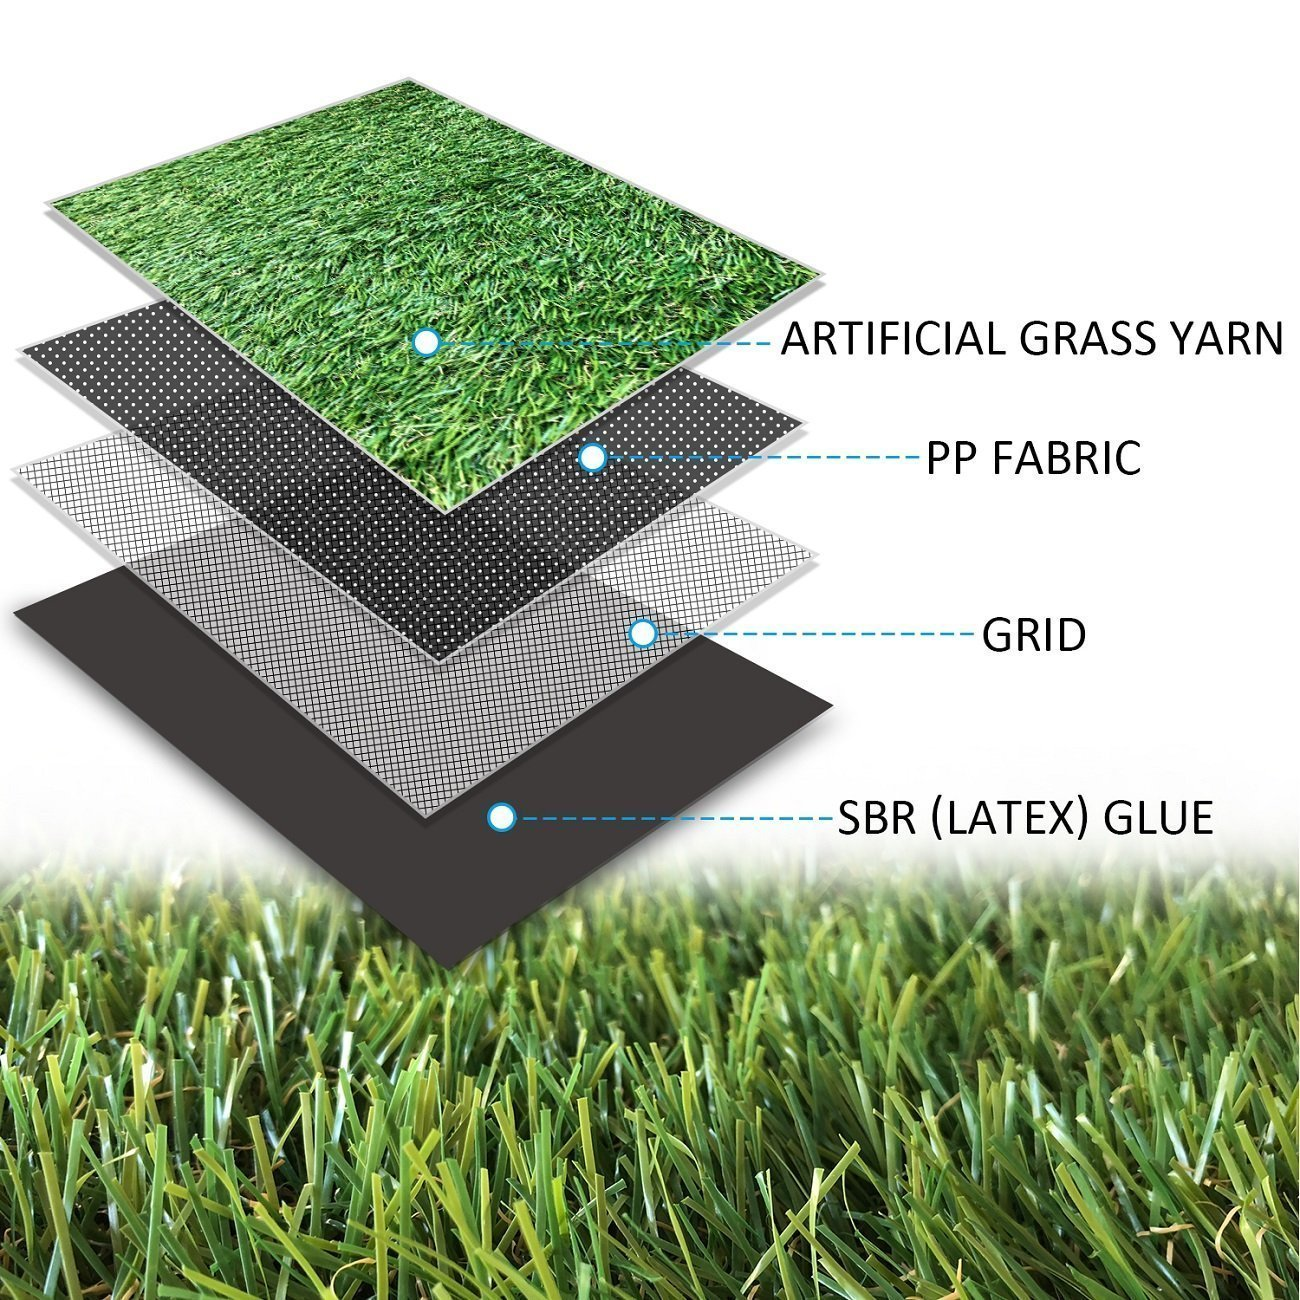 Pet Pad Artificial Grass Turf 5.5 FT x6.5 FT - Realistic Thick Synthetic Fake Grass Mat for Outdoor Garden Landscape Balcony Dog Grass Rug by PET GROW (Image #3)